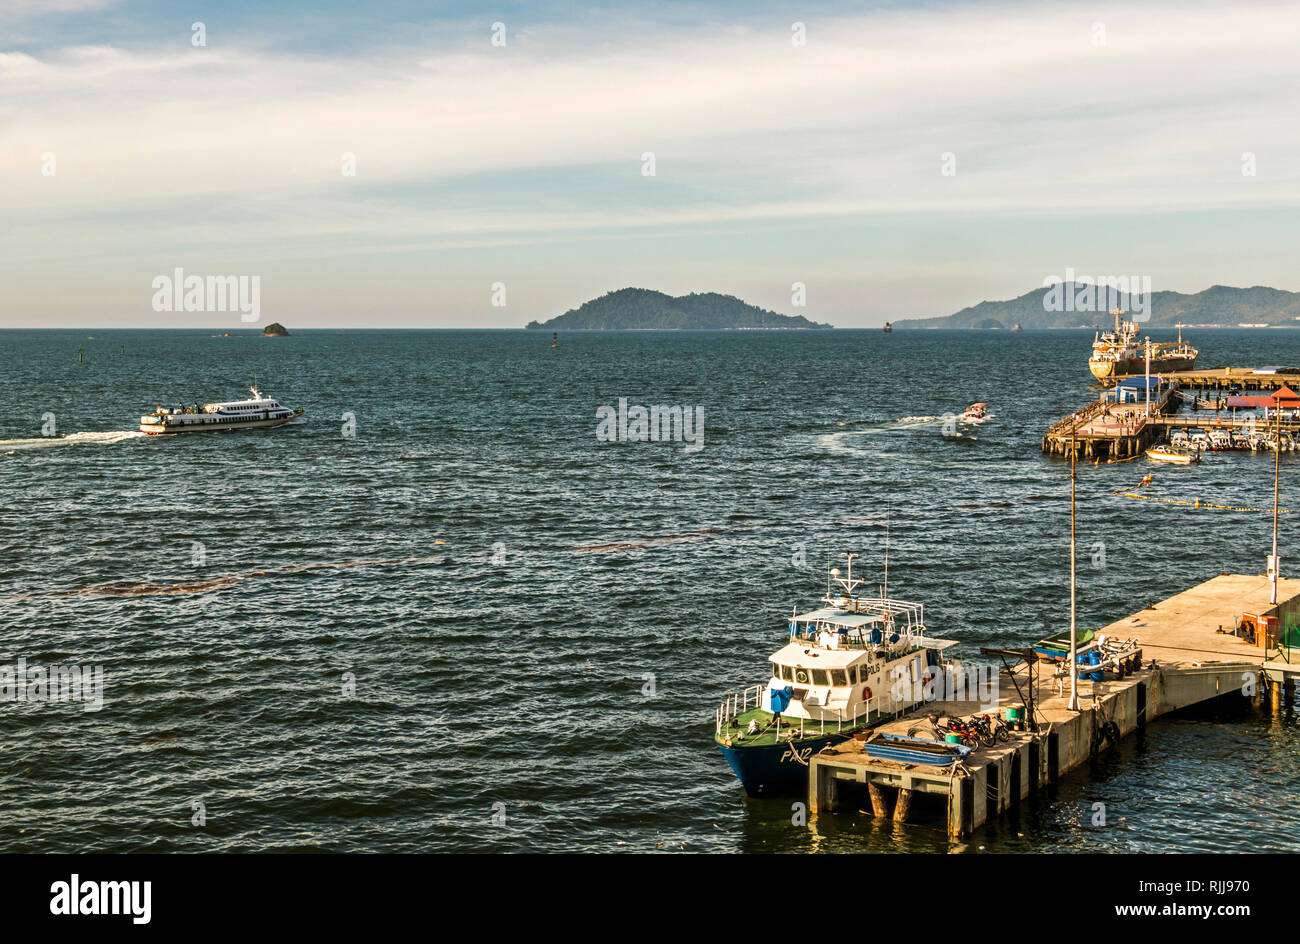 Boats in South China sea off Kota Kinabalu Sabah Malaysia Borneo during the day and at sunset. Also ferries going to and from Island off Kota Kinabalu - Stock Image